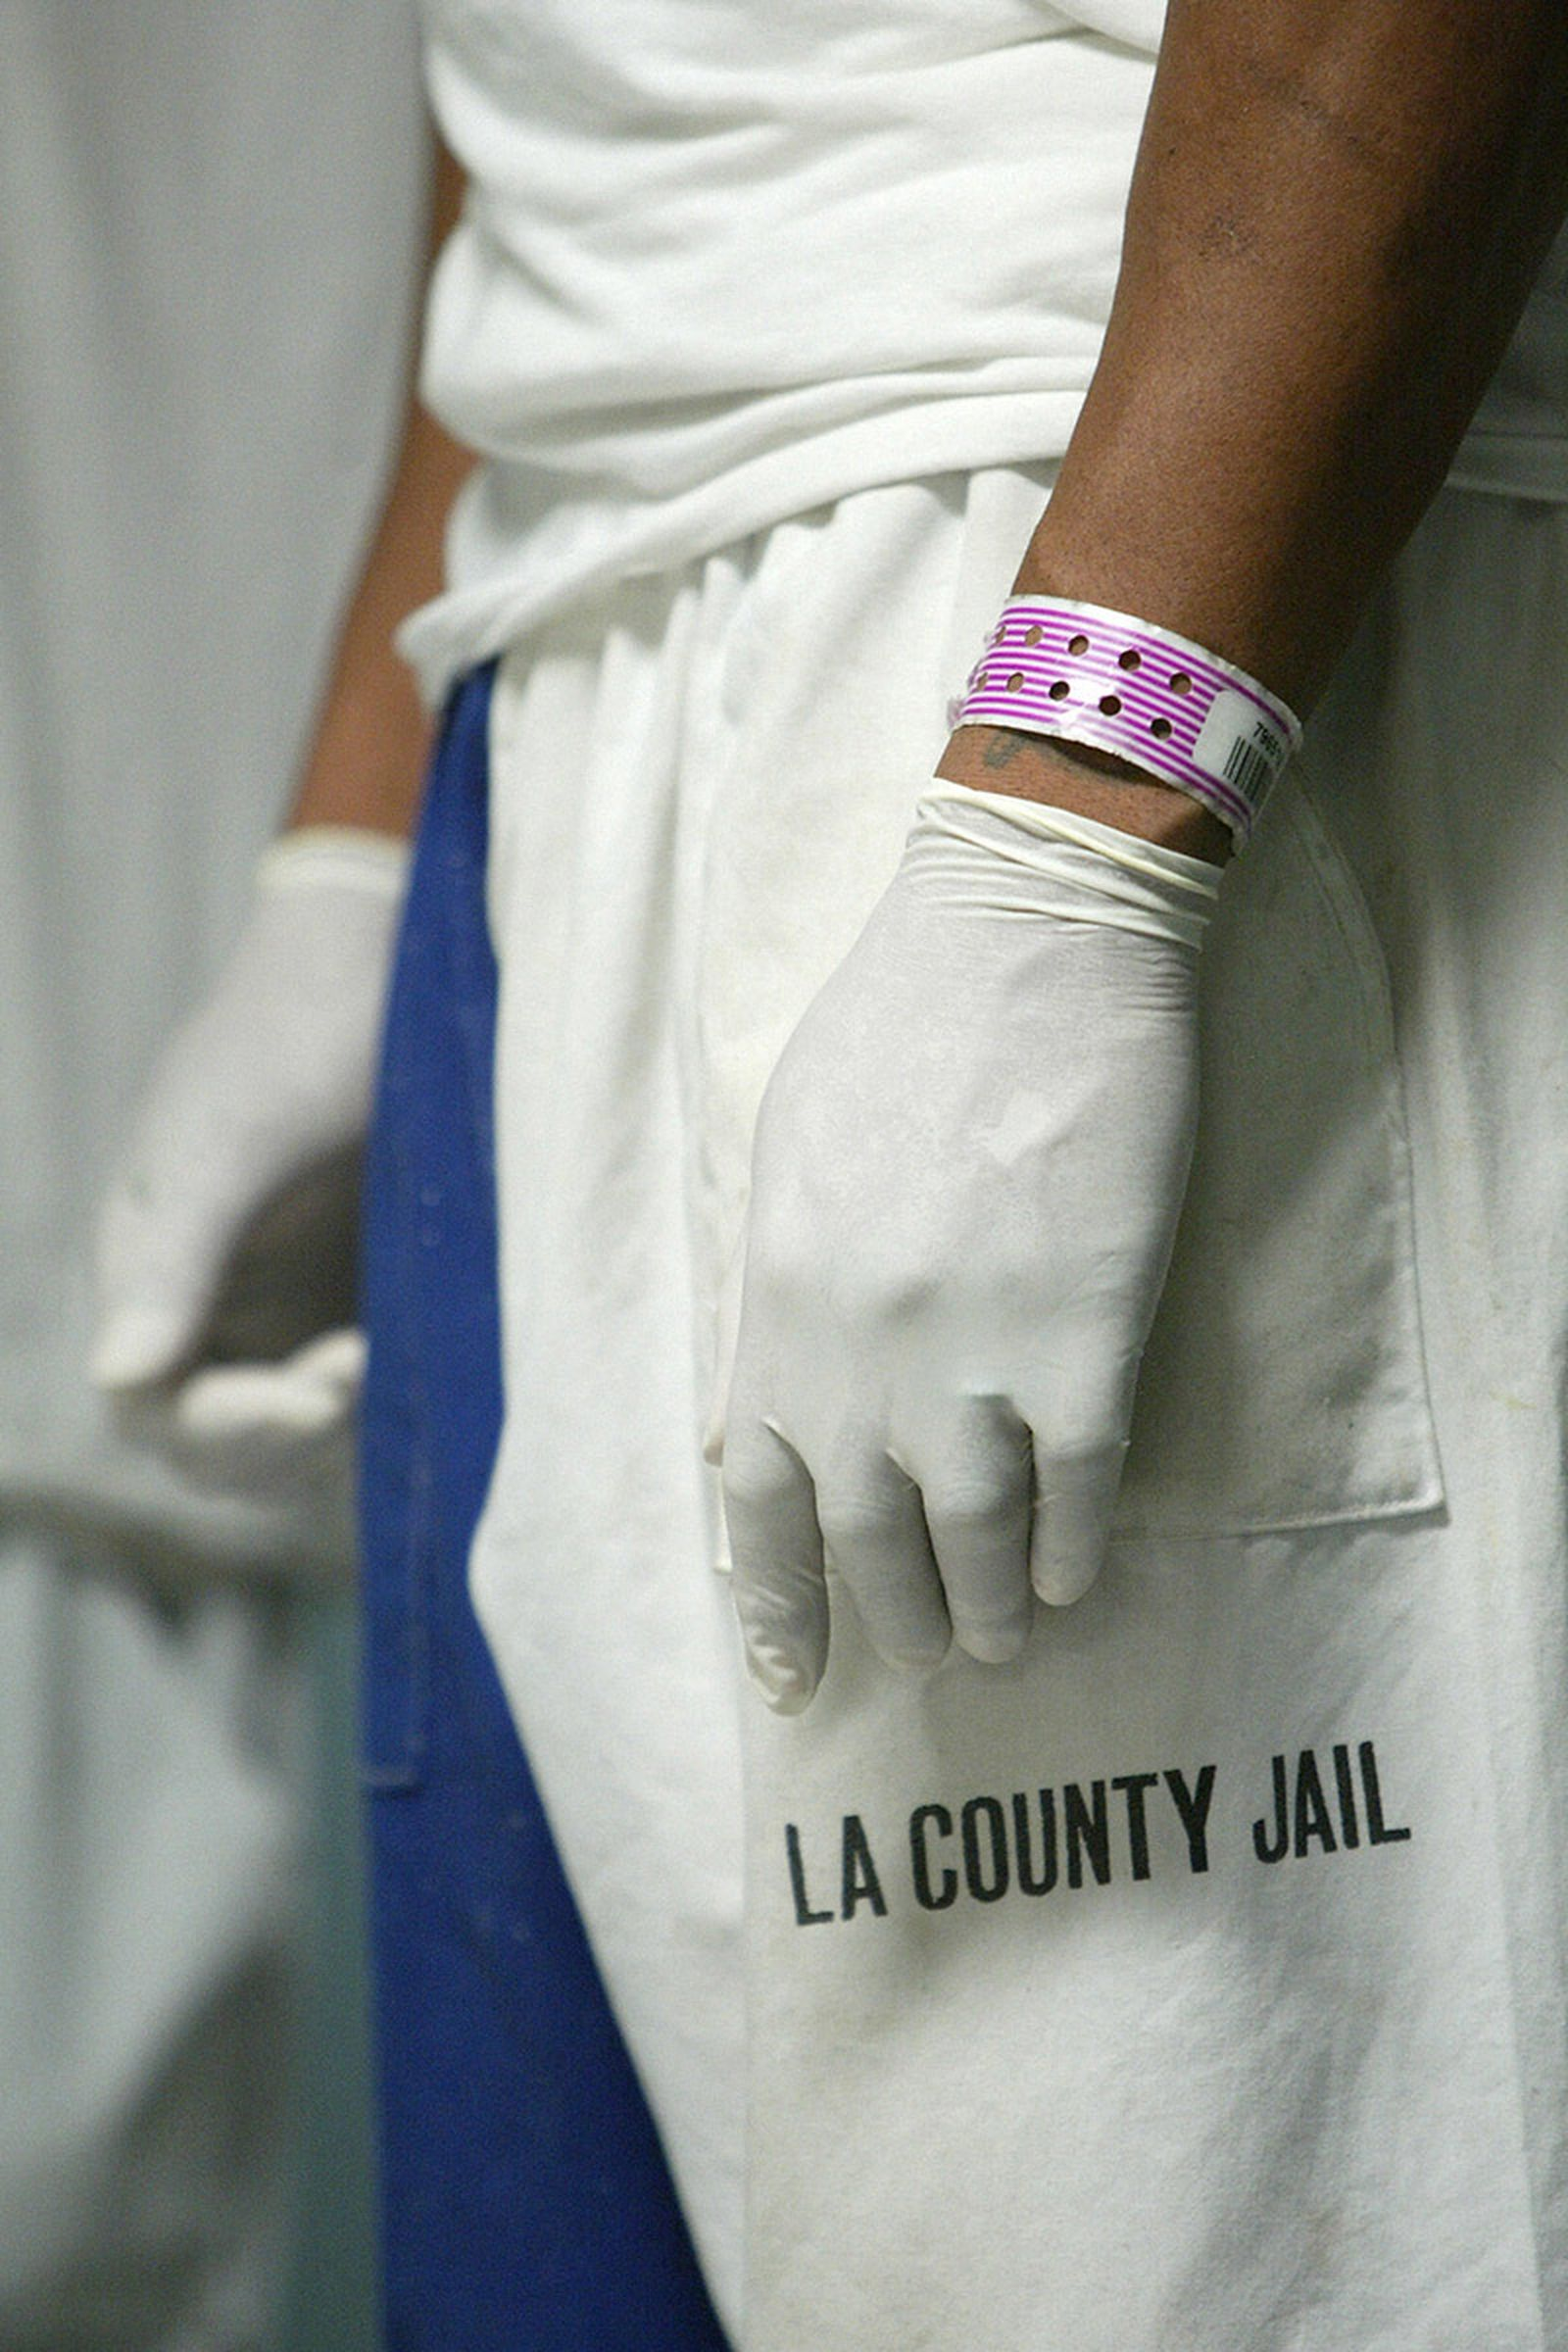 americas-need-prison-reform-long-overdue-02